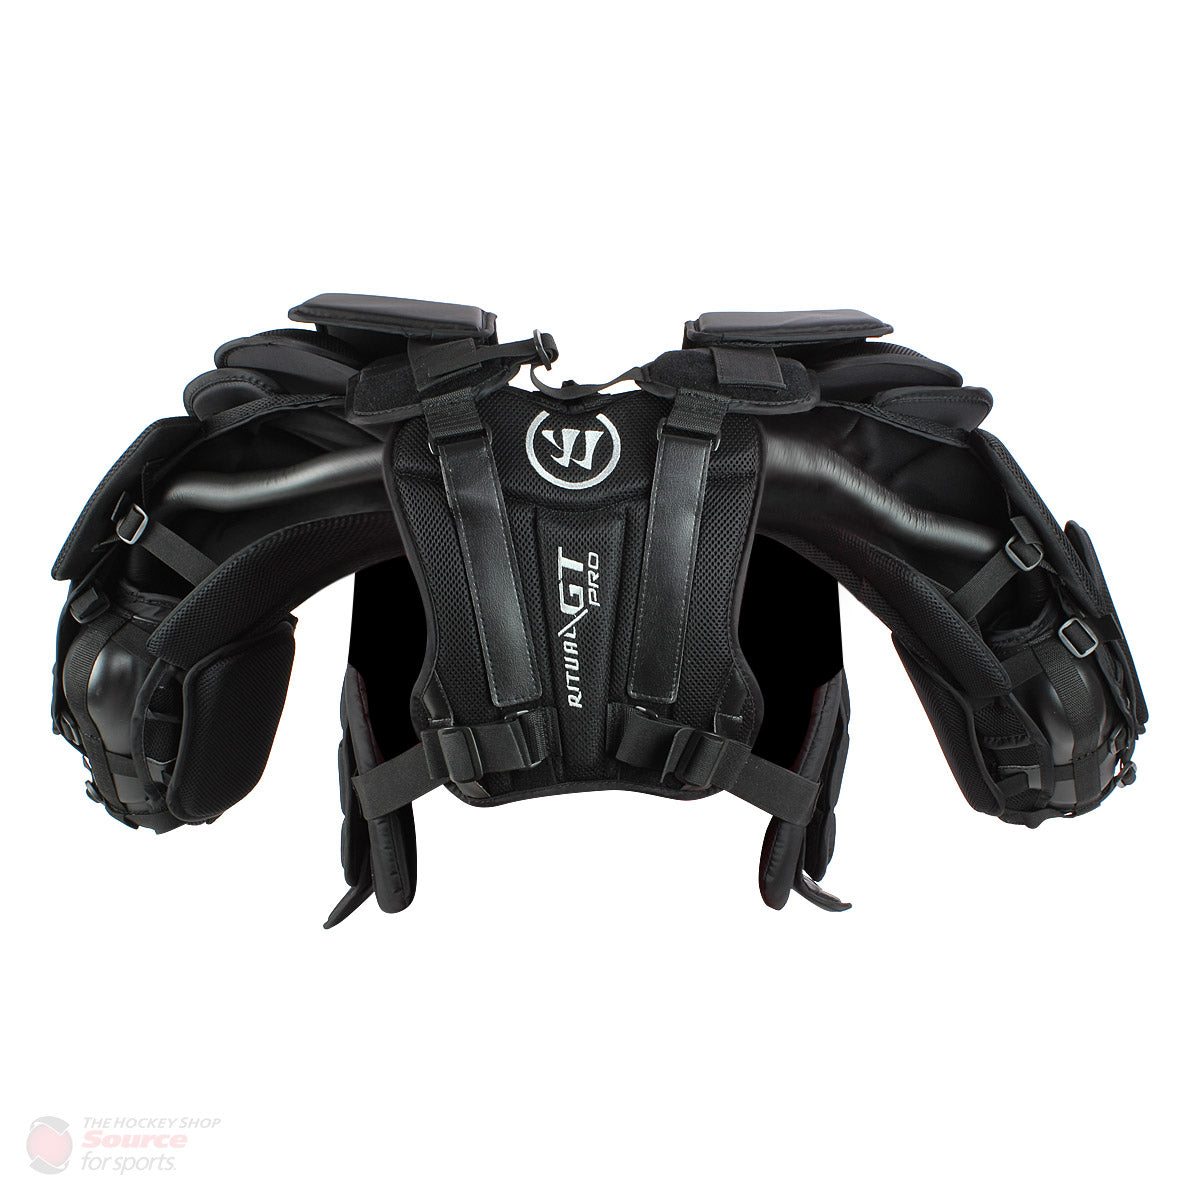 2891eb7e245 See More See Less. Warrior Ritual GT Pro Senior Chest   Arm Protectors ...